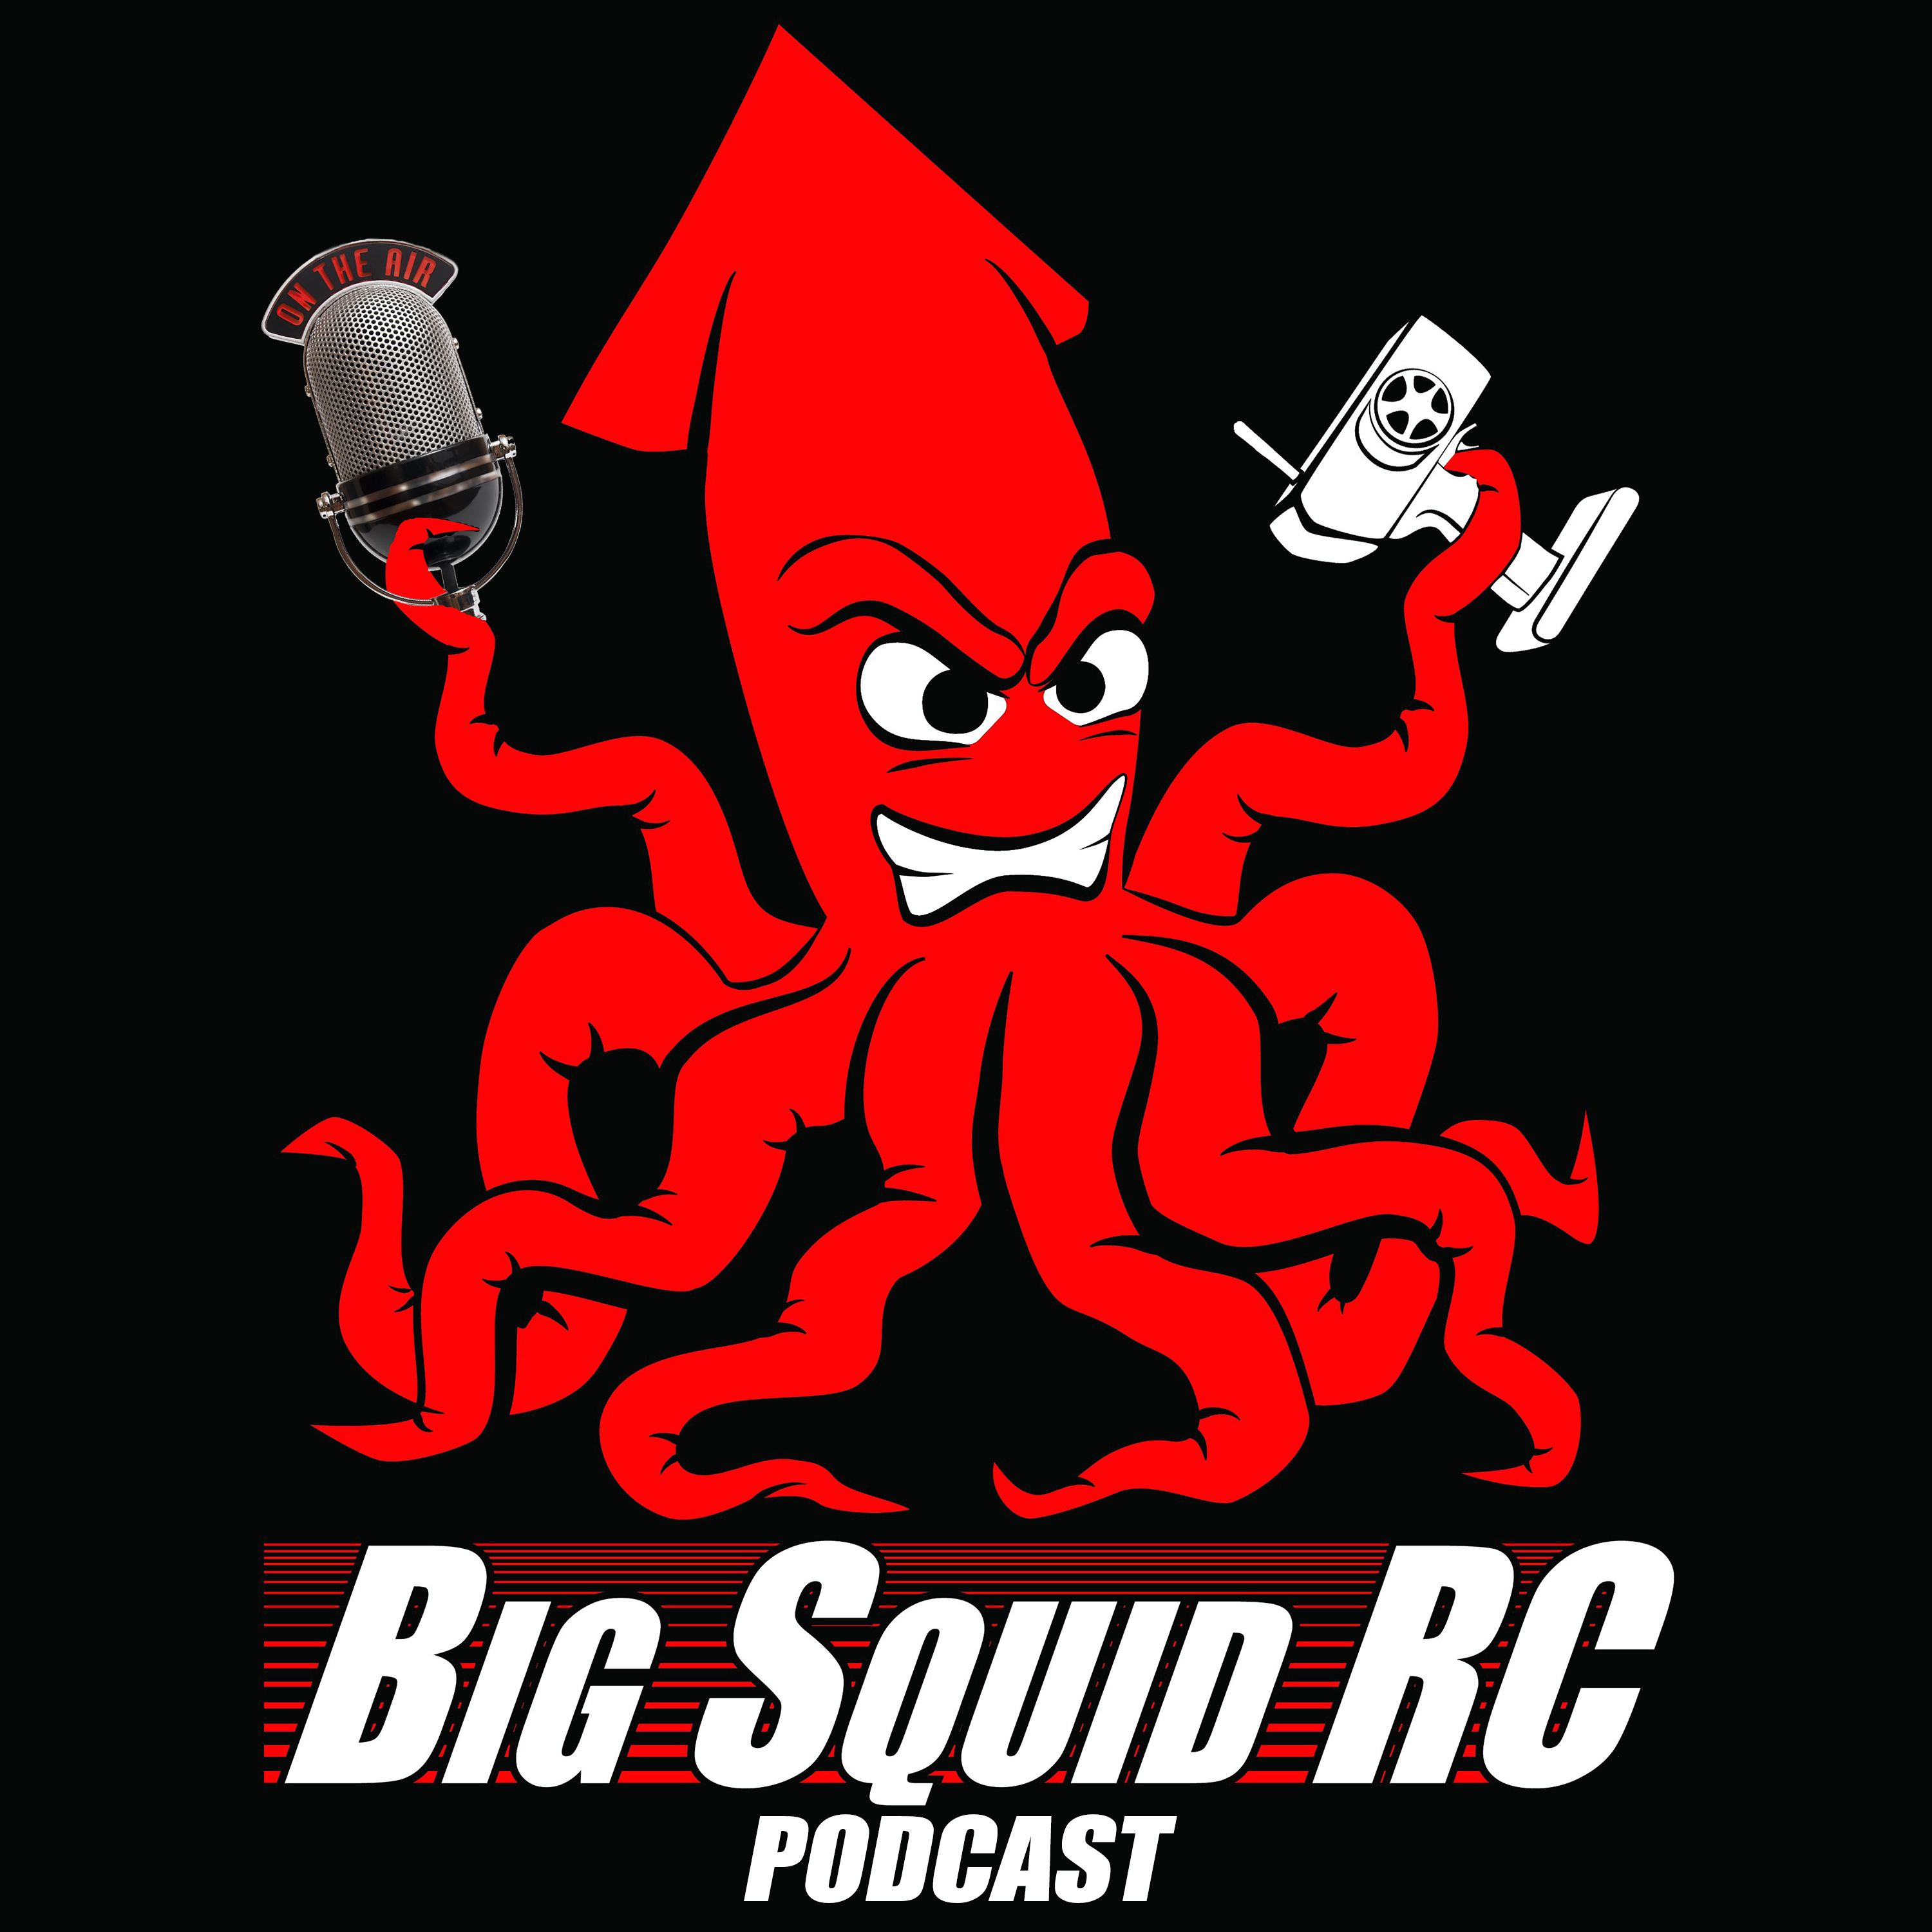 The Big Squid RC Podcast